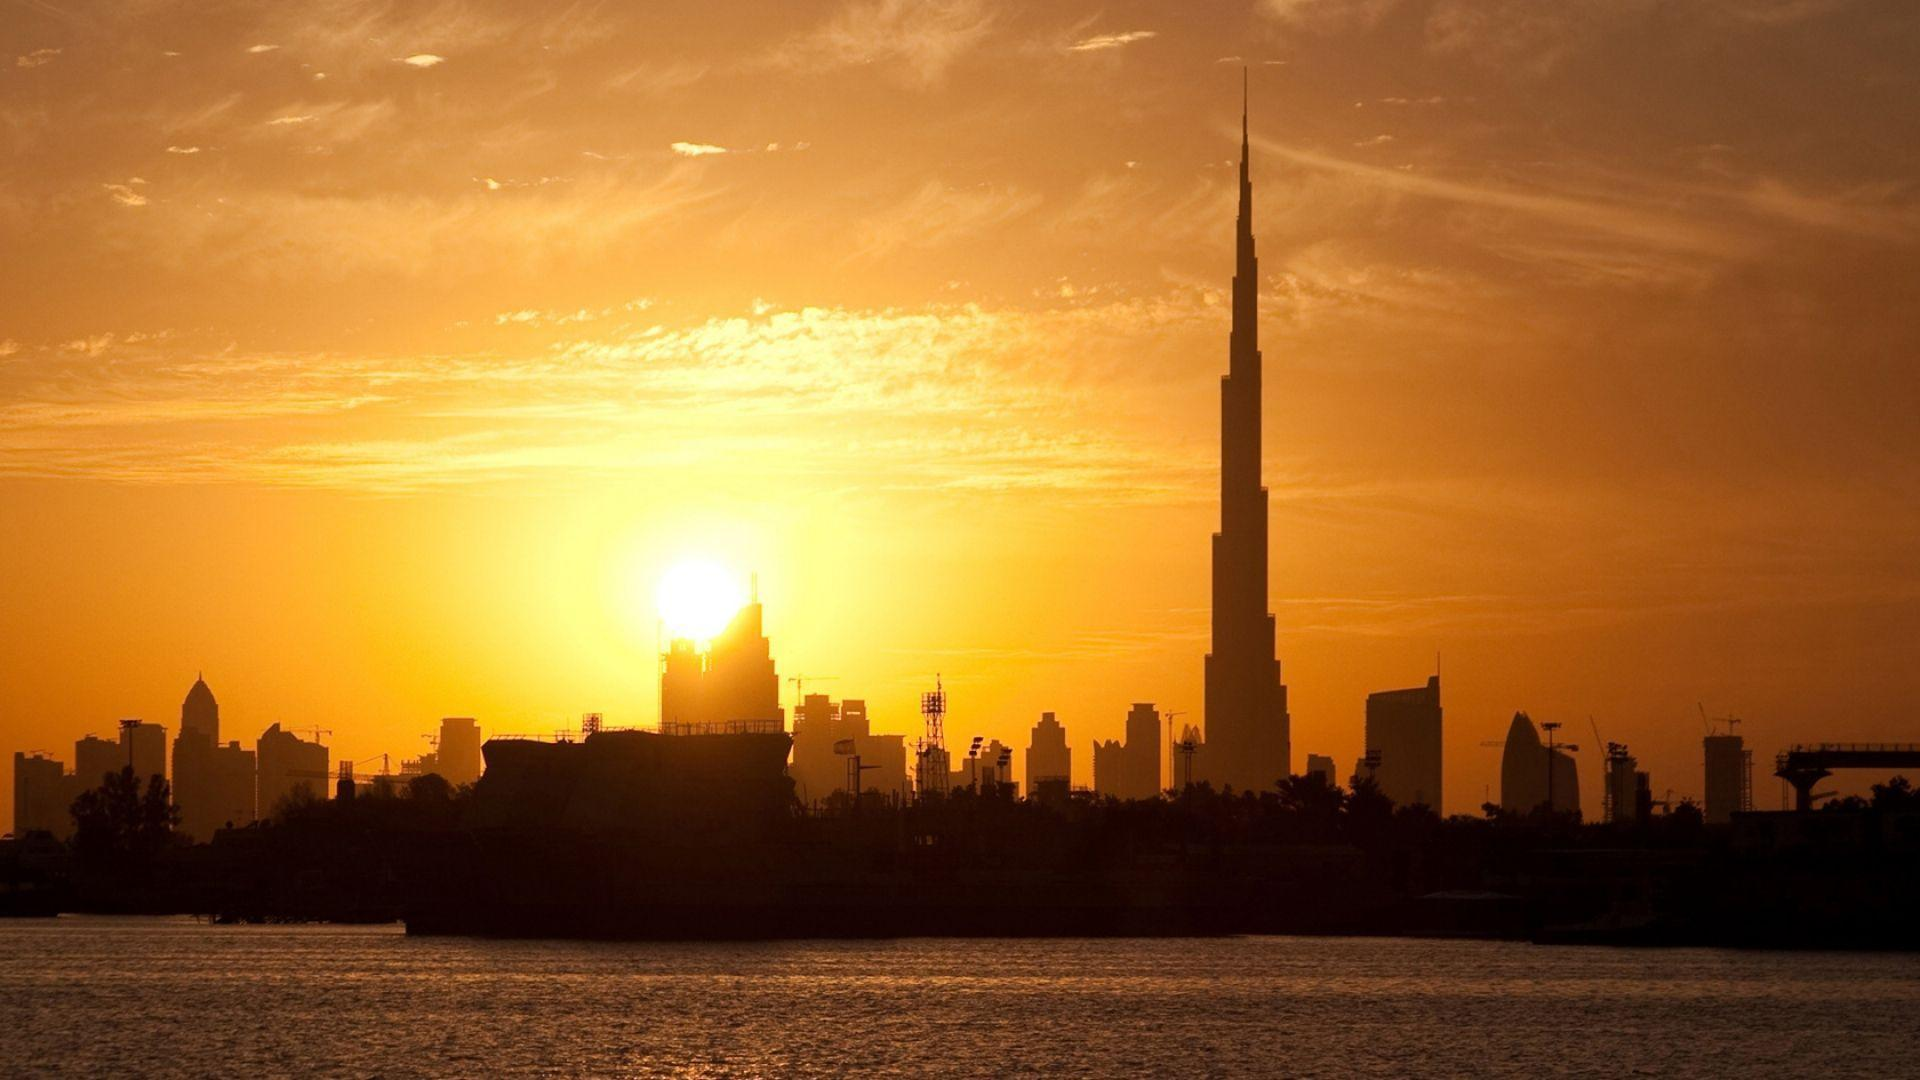 Full HD 1080p Dubai Wallpapers HD, Desktop Backgrounds 1920x1080 ...